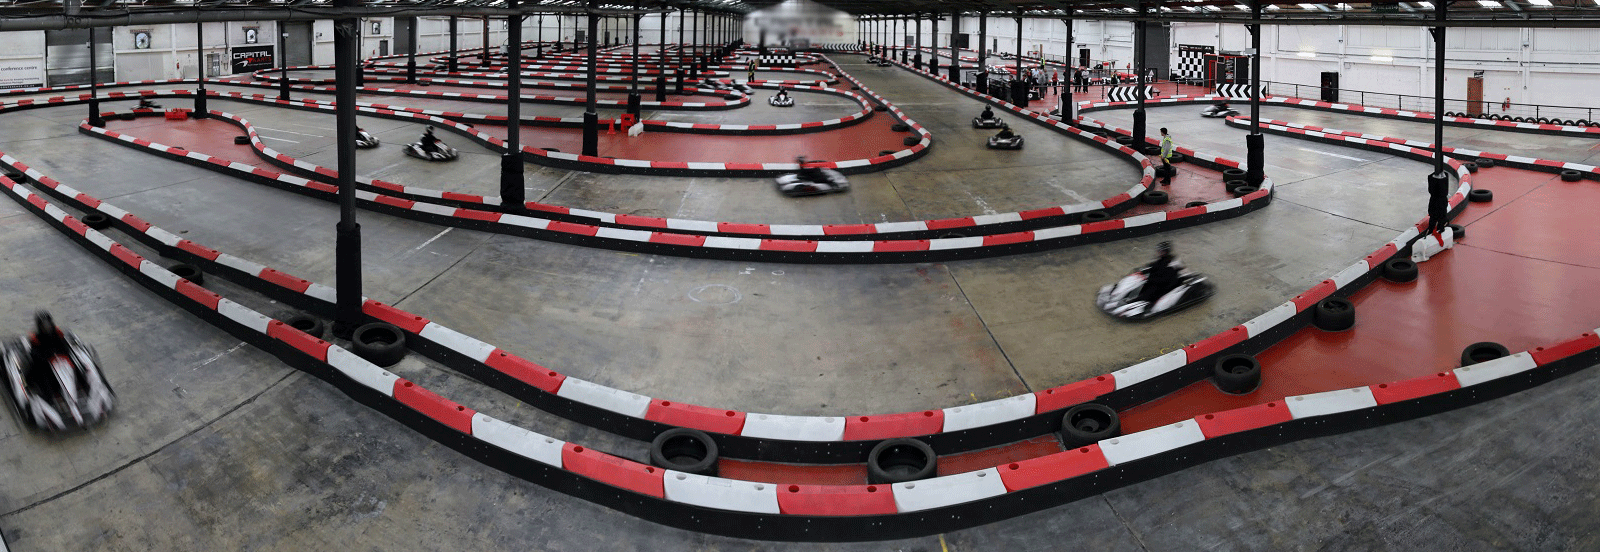 Escaping the friend zone - Tom took the pair go-karting to redeem himself